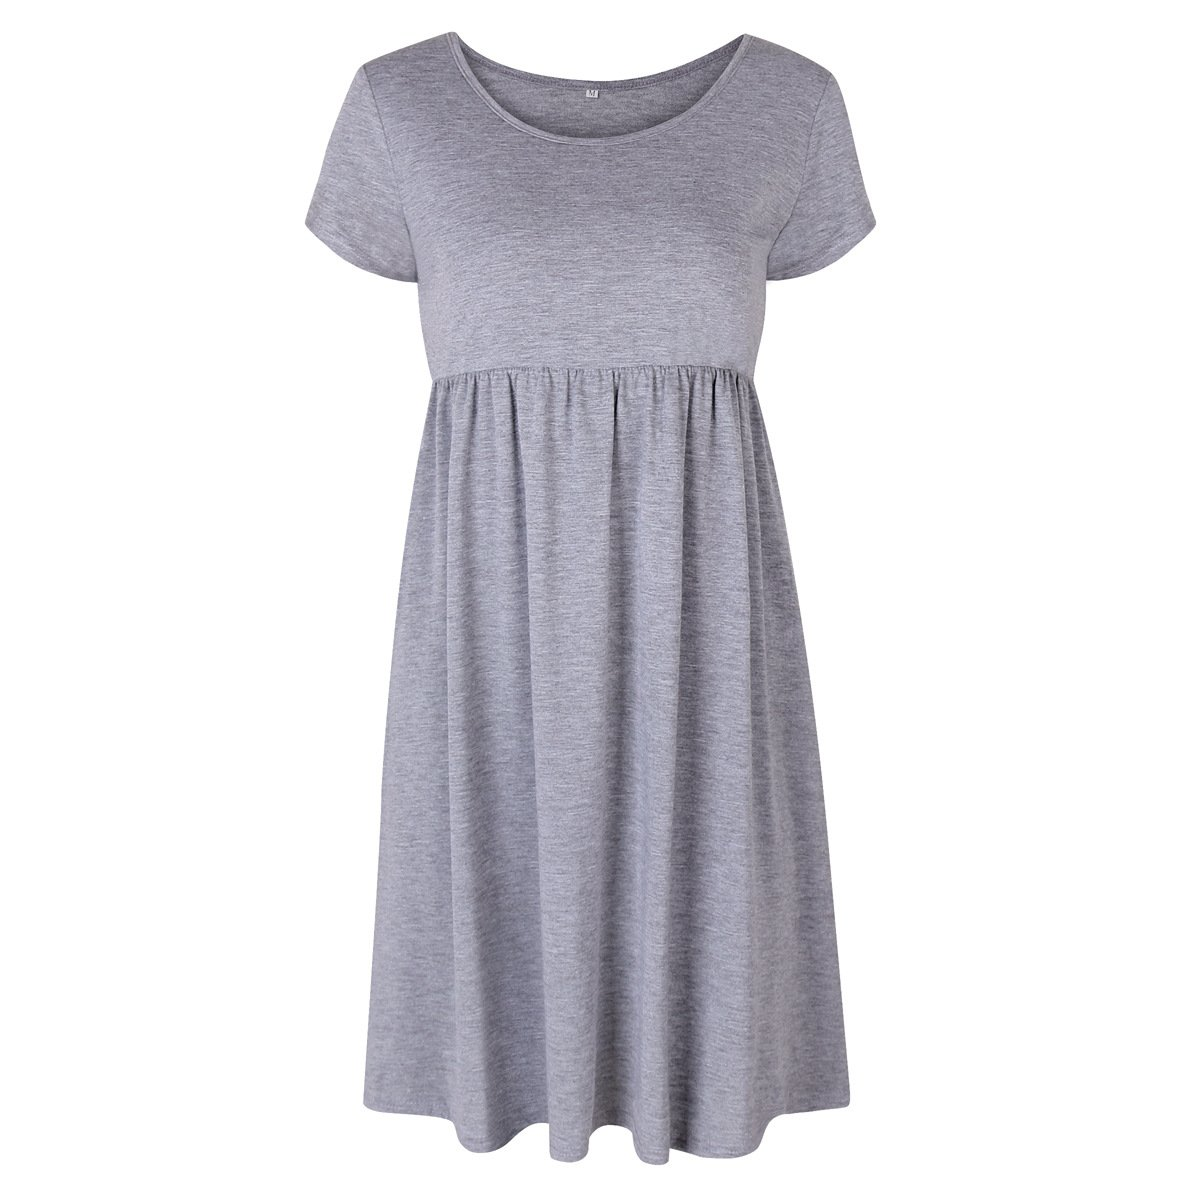 Womens Crewneck Cap Sleeve Pleated Swing Casual Tunic T-shirt Flare Midi Dress at Amazon Womens Clothing store: